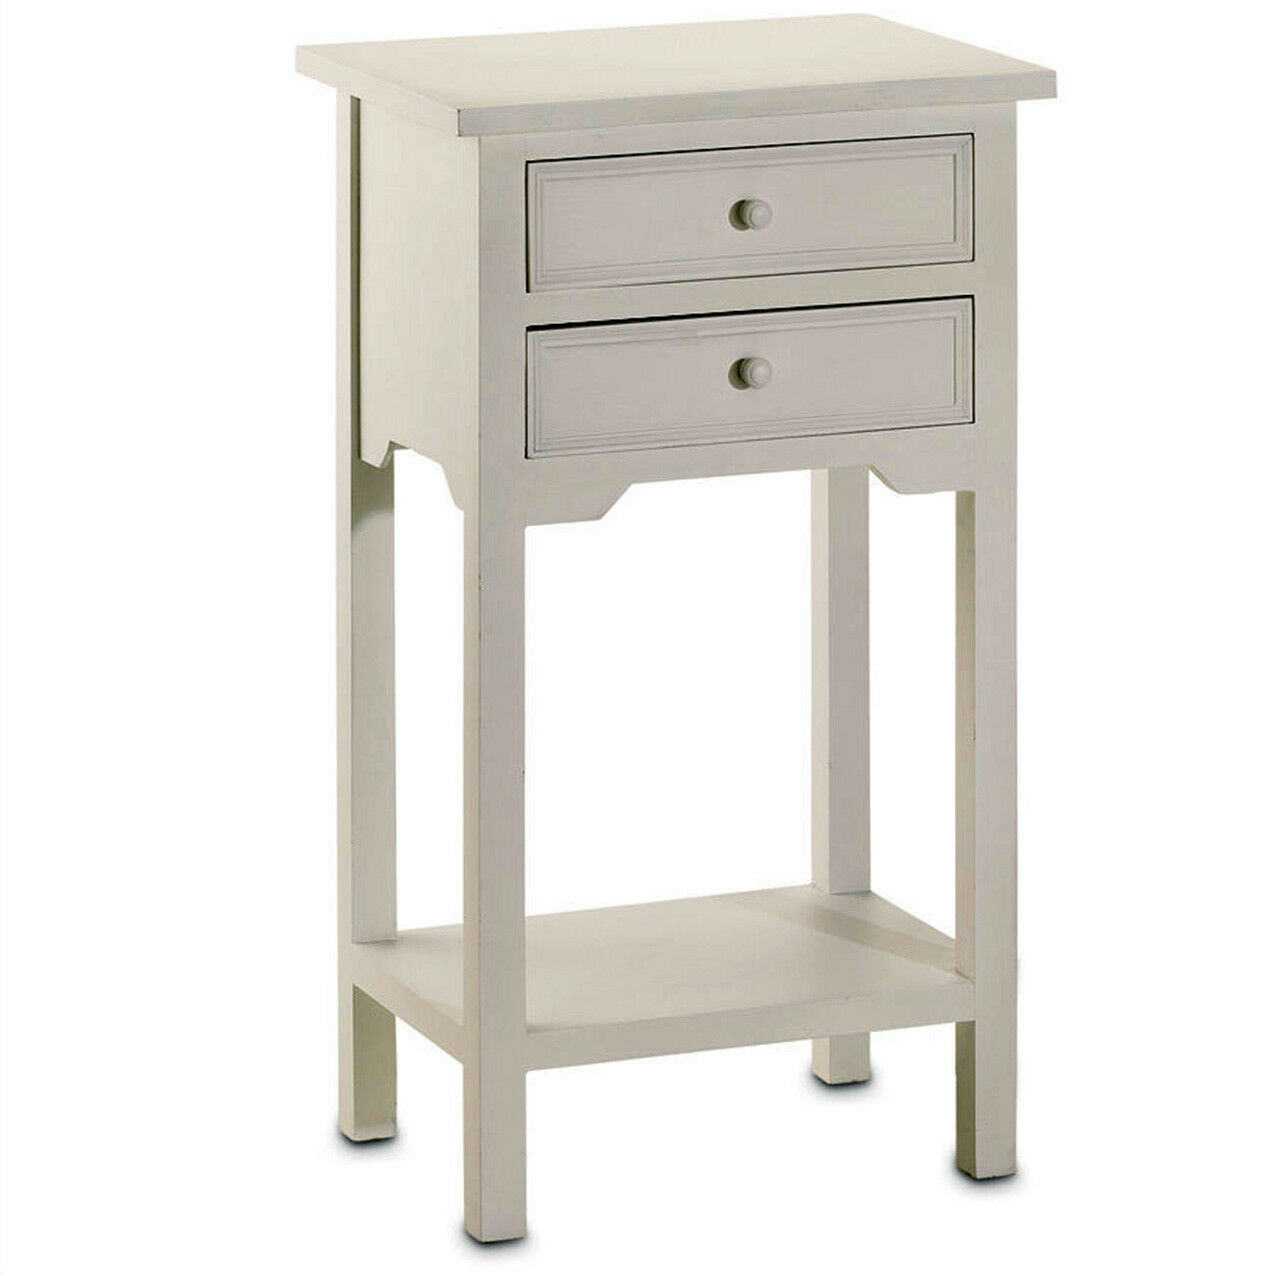 Night Stand Side Table White Nightstand Bedside End Table 2 Drawer Farmhouse For Sale Online